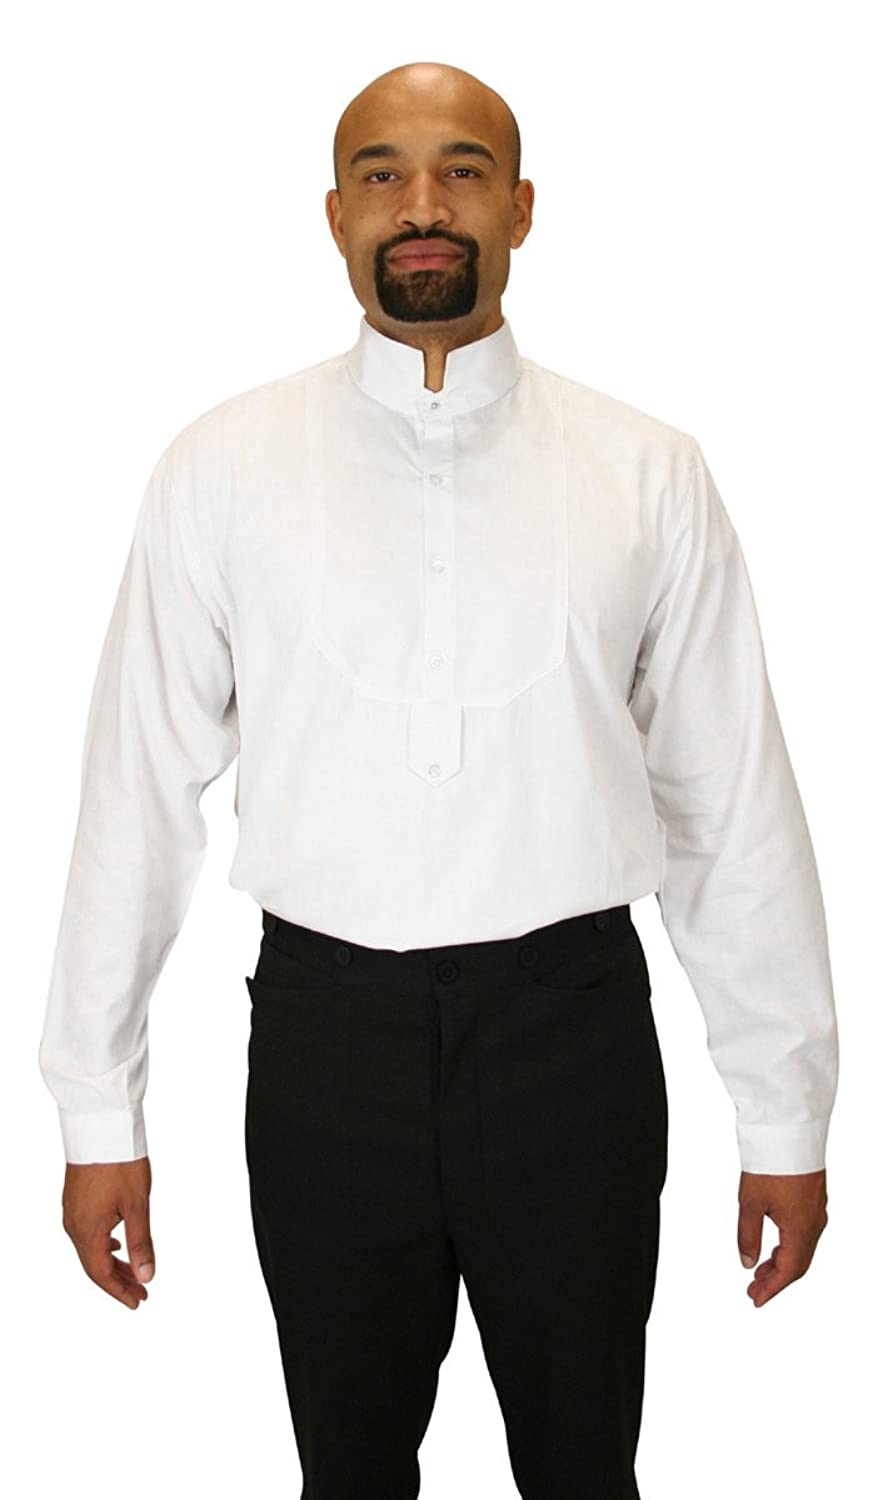 Men's Steampunk Clothing, Costumes, Fashion Mens Victorian Collar Dress Shirt $59.95 AT vintagedancer.com